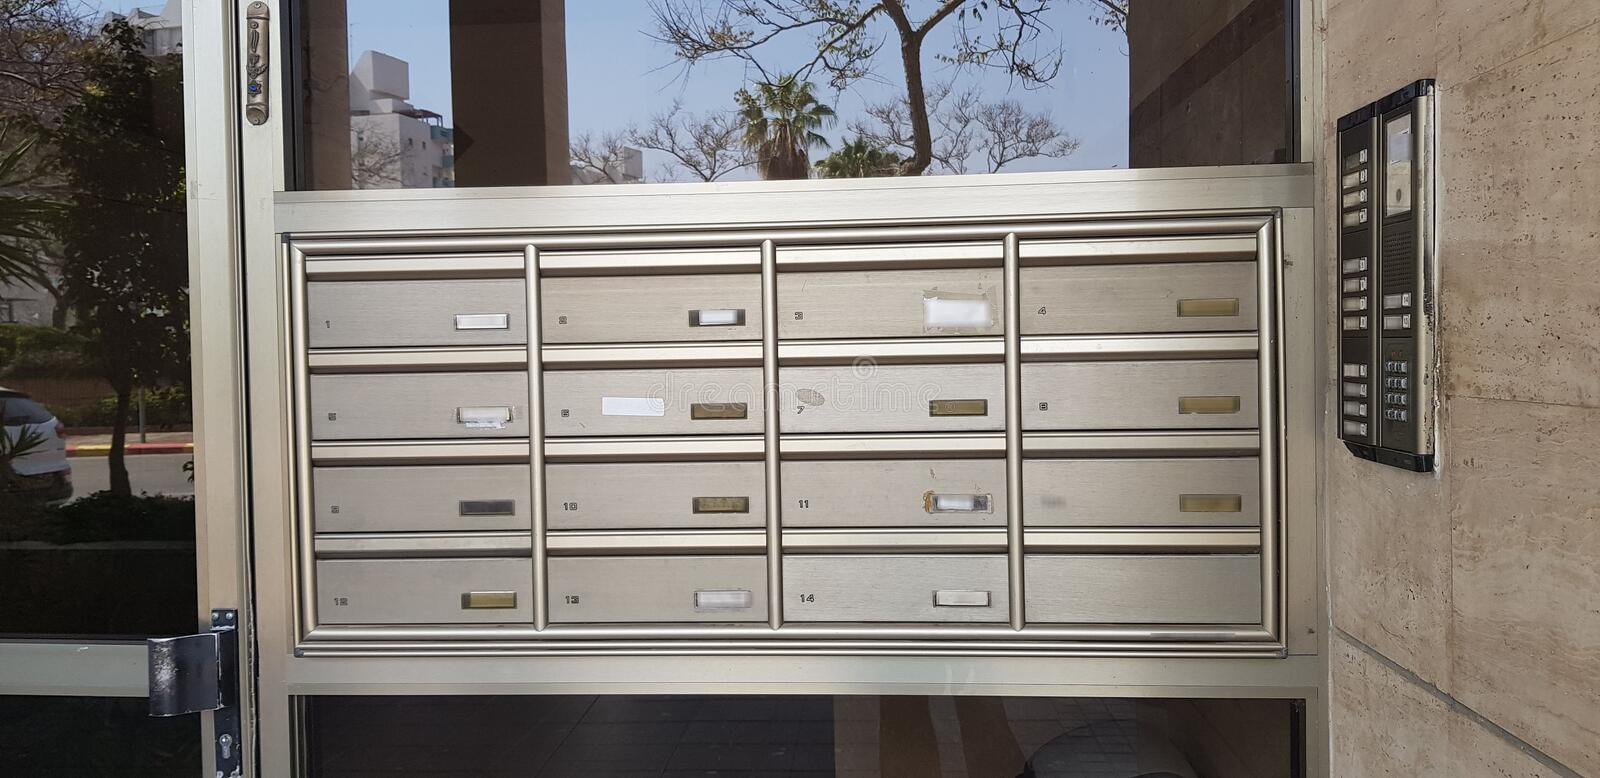 Metal individual mail boxes with apartment numbers royalty free stock photo